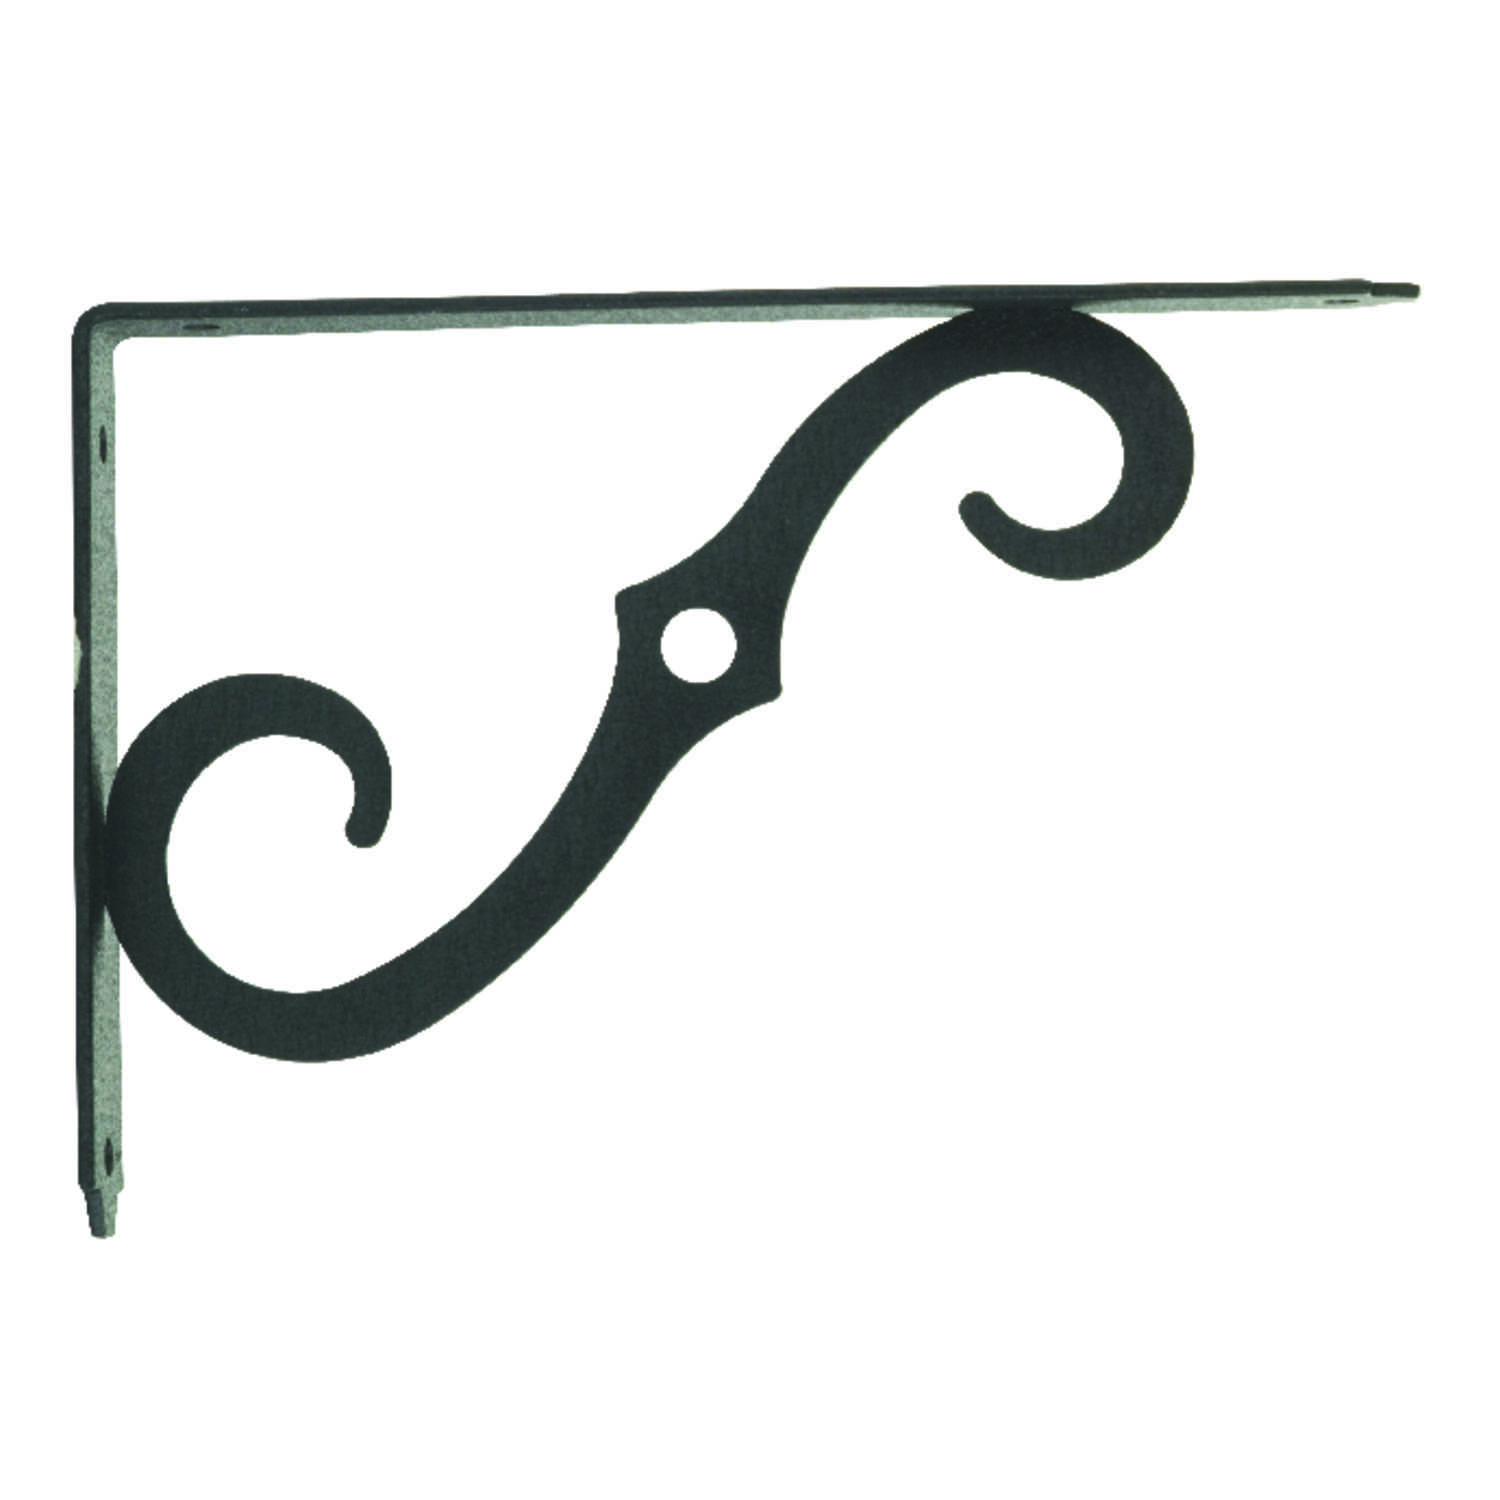 Ace  Black  Steel  Shelf Support  8 in. L 80 lb.